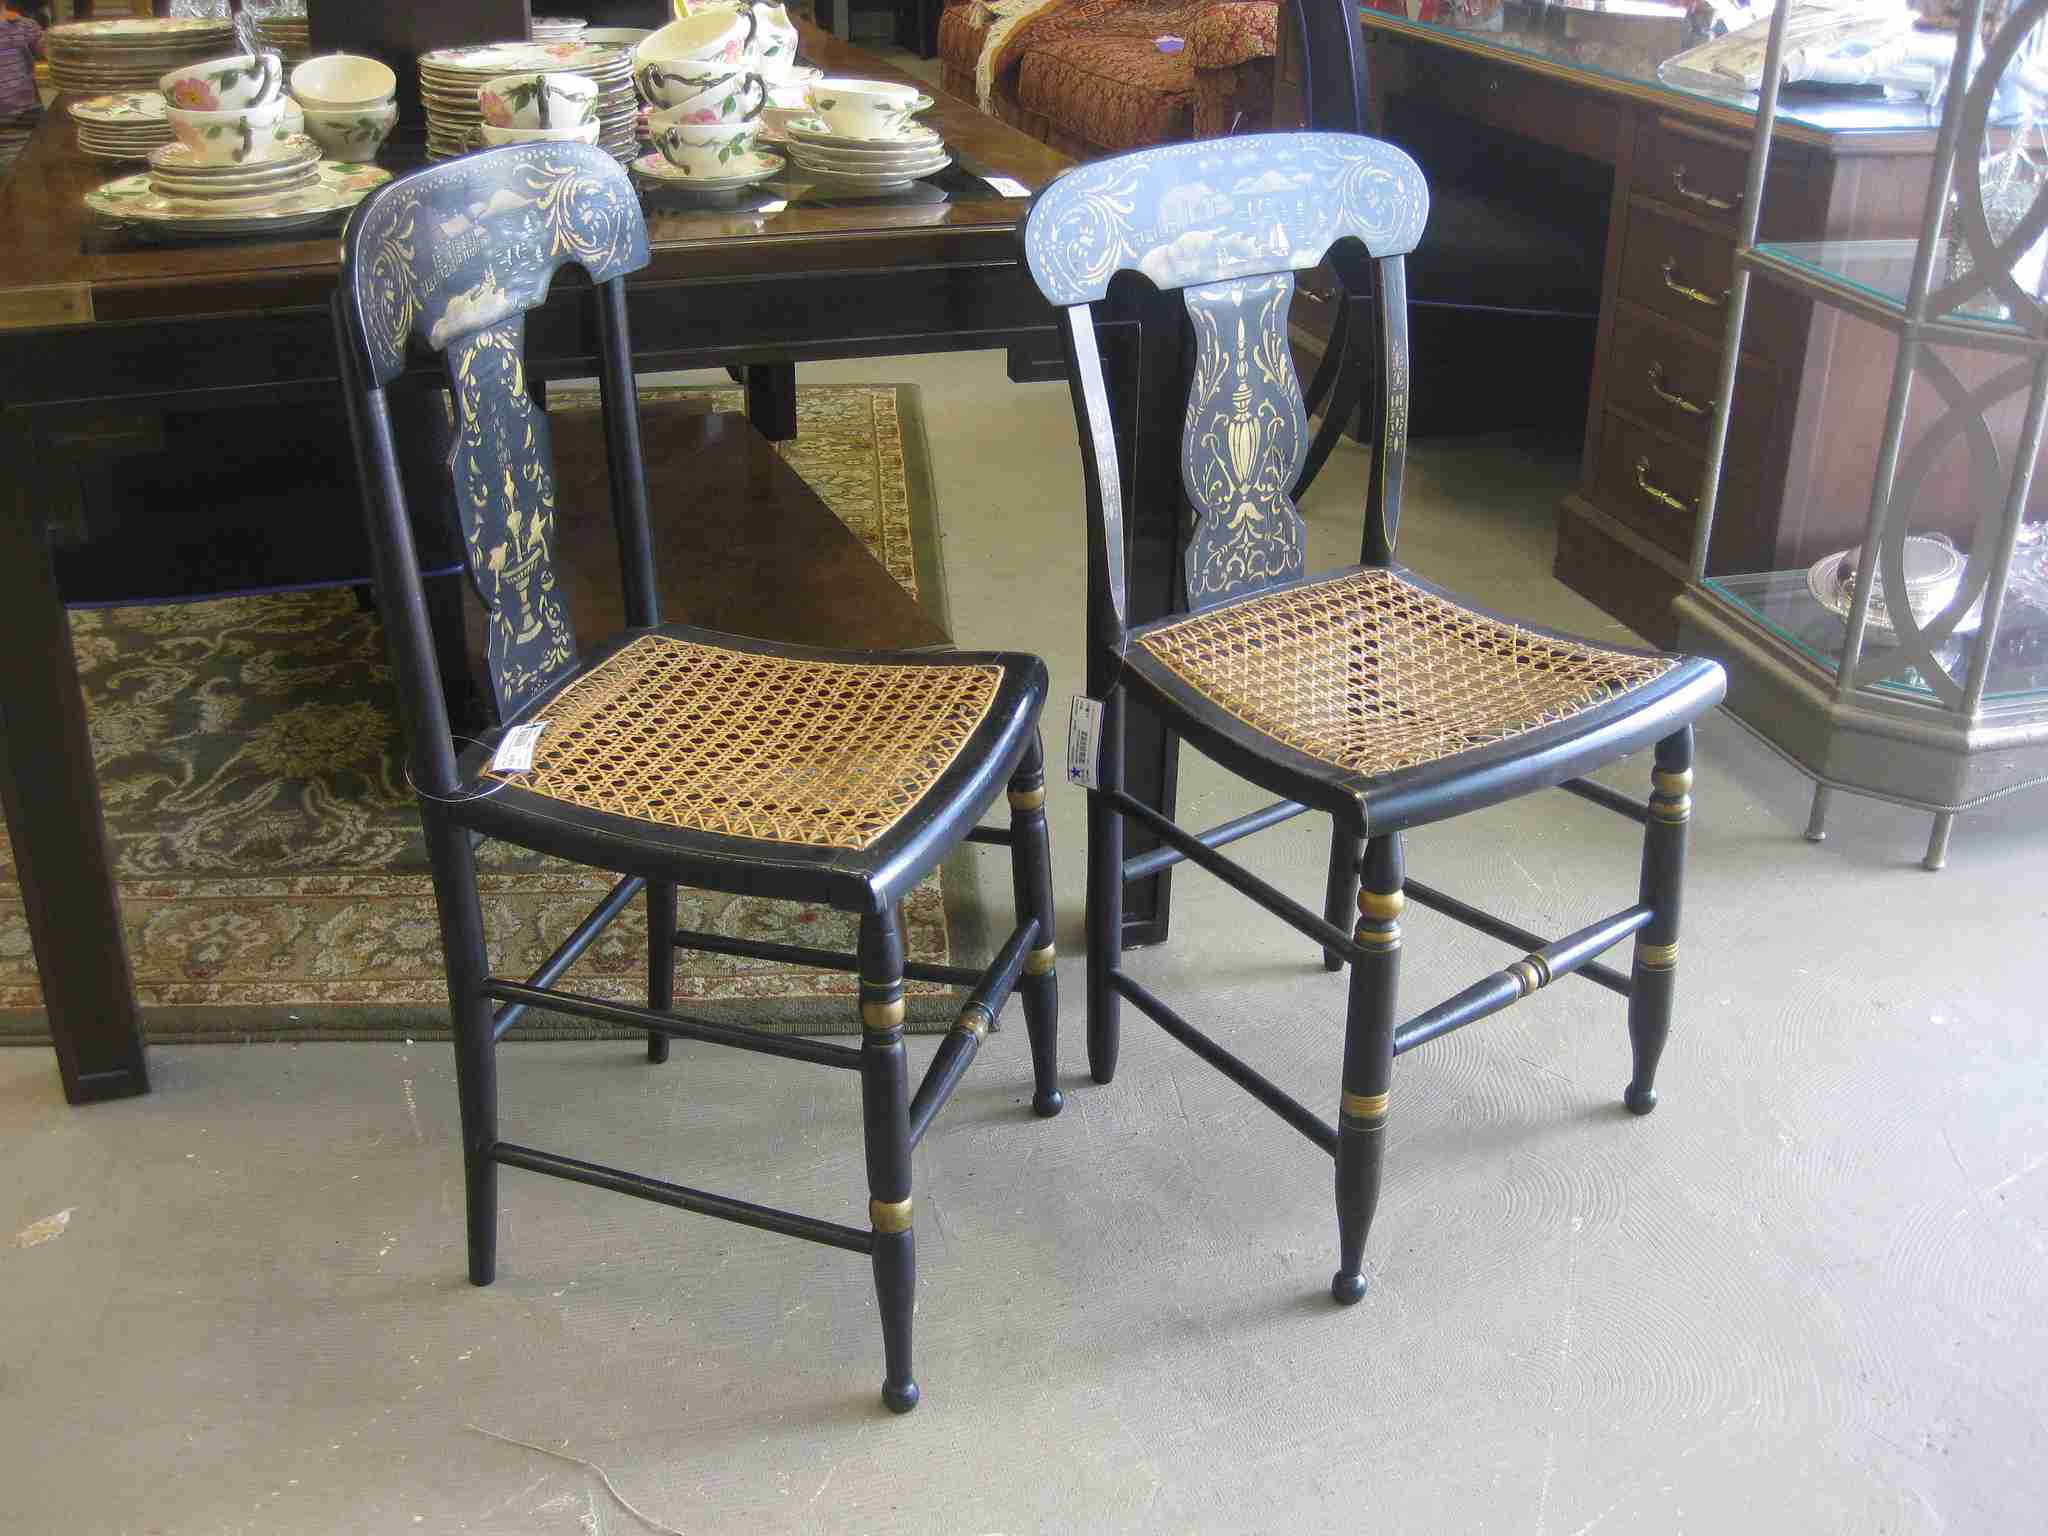 two hitchcock chairs in store